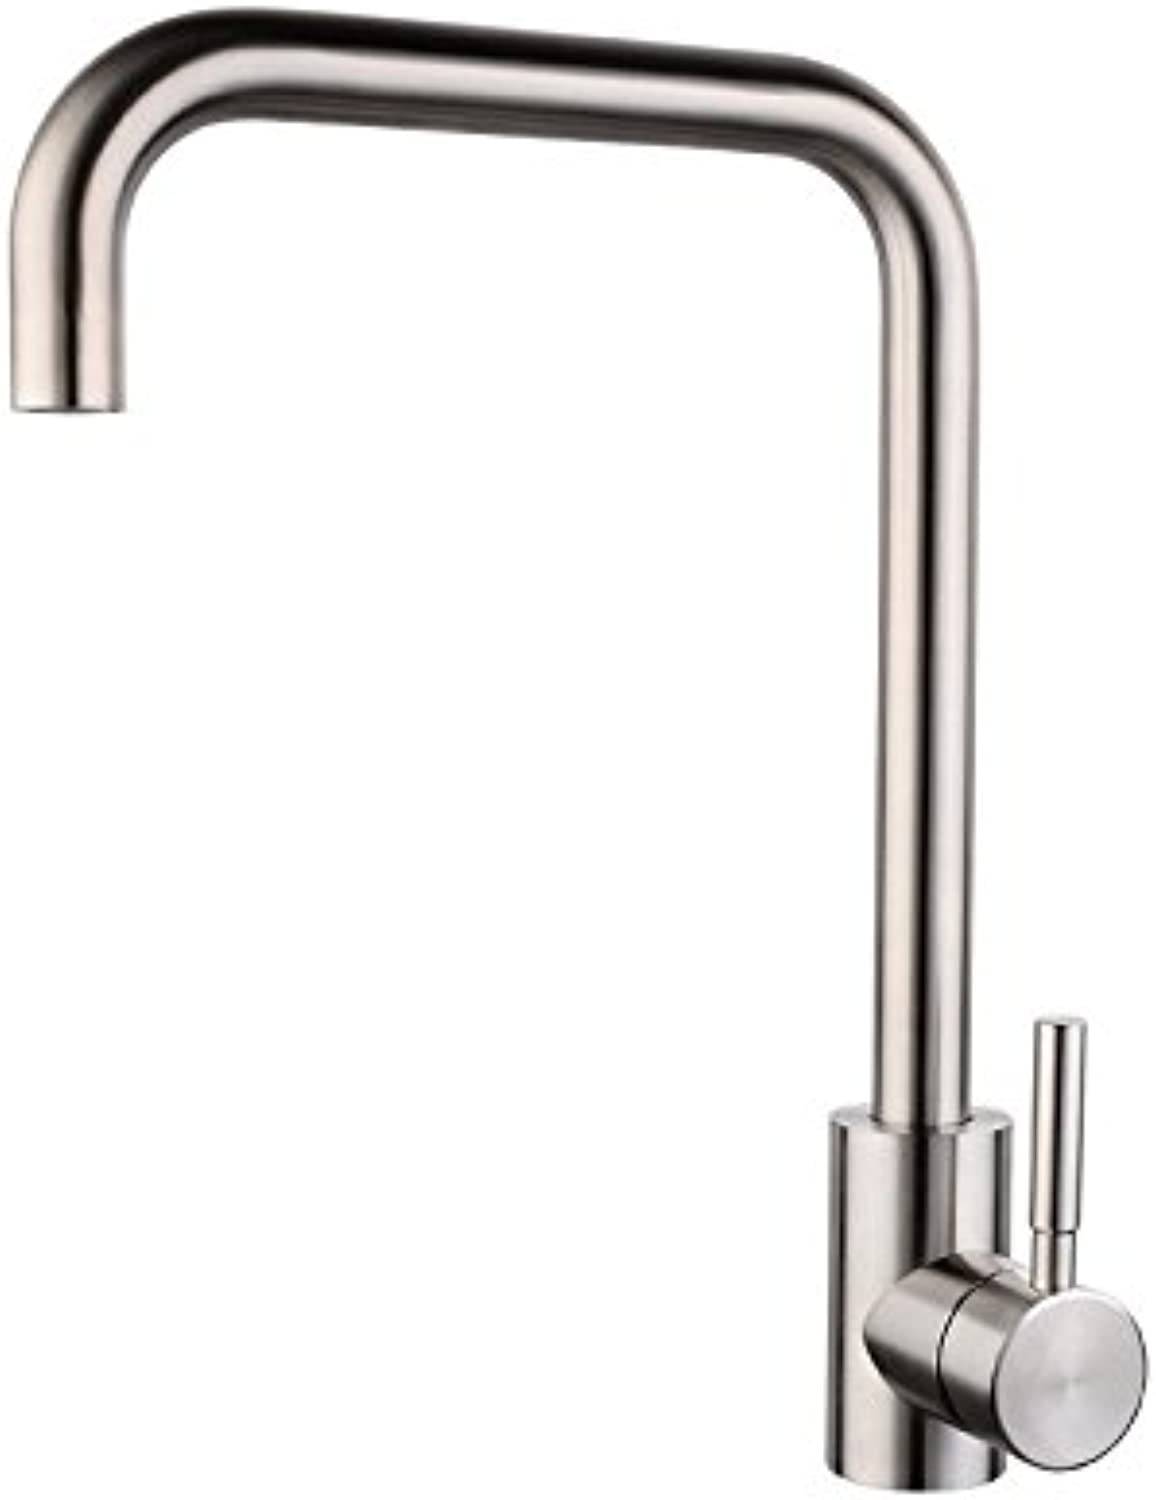 JWLT Pots, faucets, faucets, Sanitary Wares, Stainless Steel hot and Cold Kitchen Faucet faucets,1100 Grams